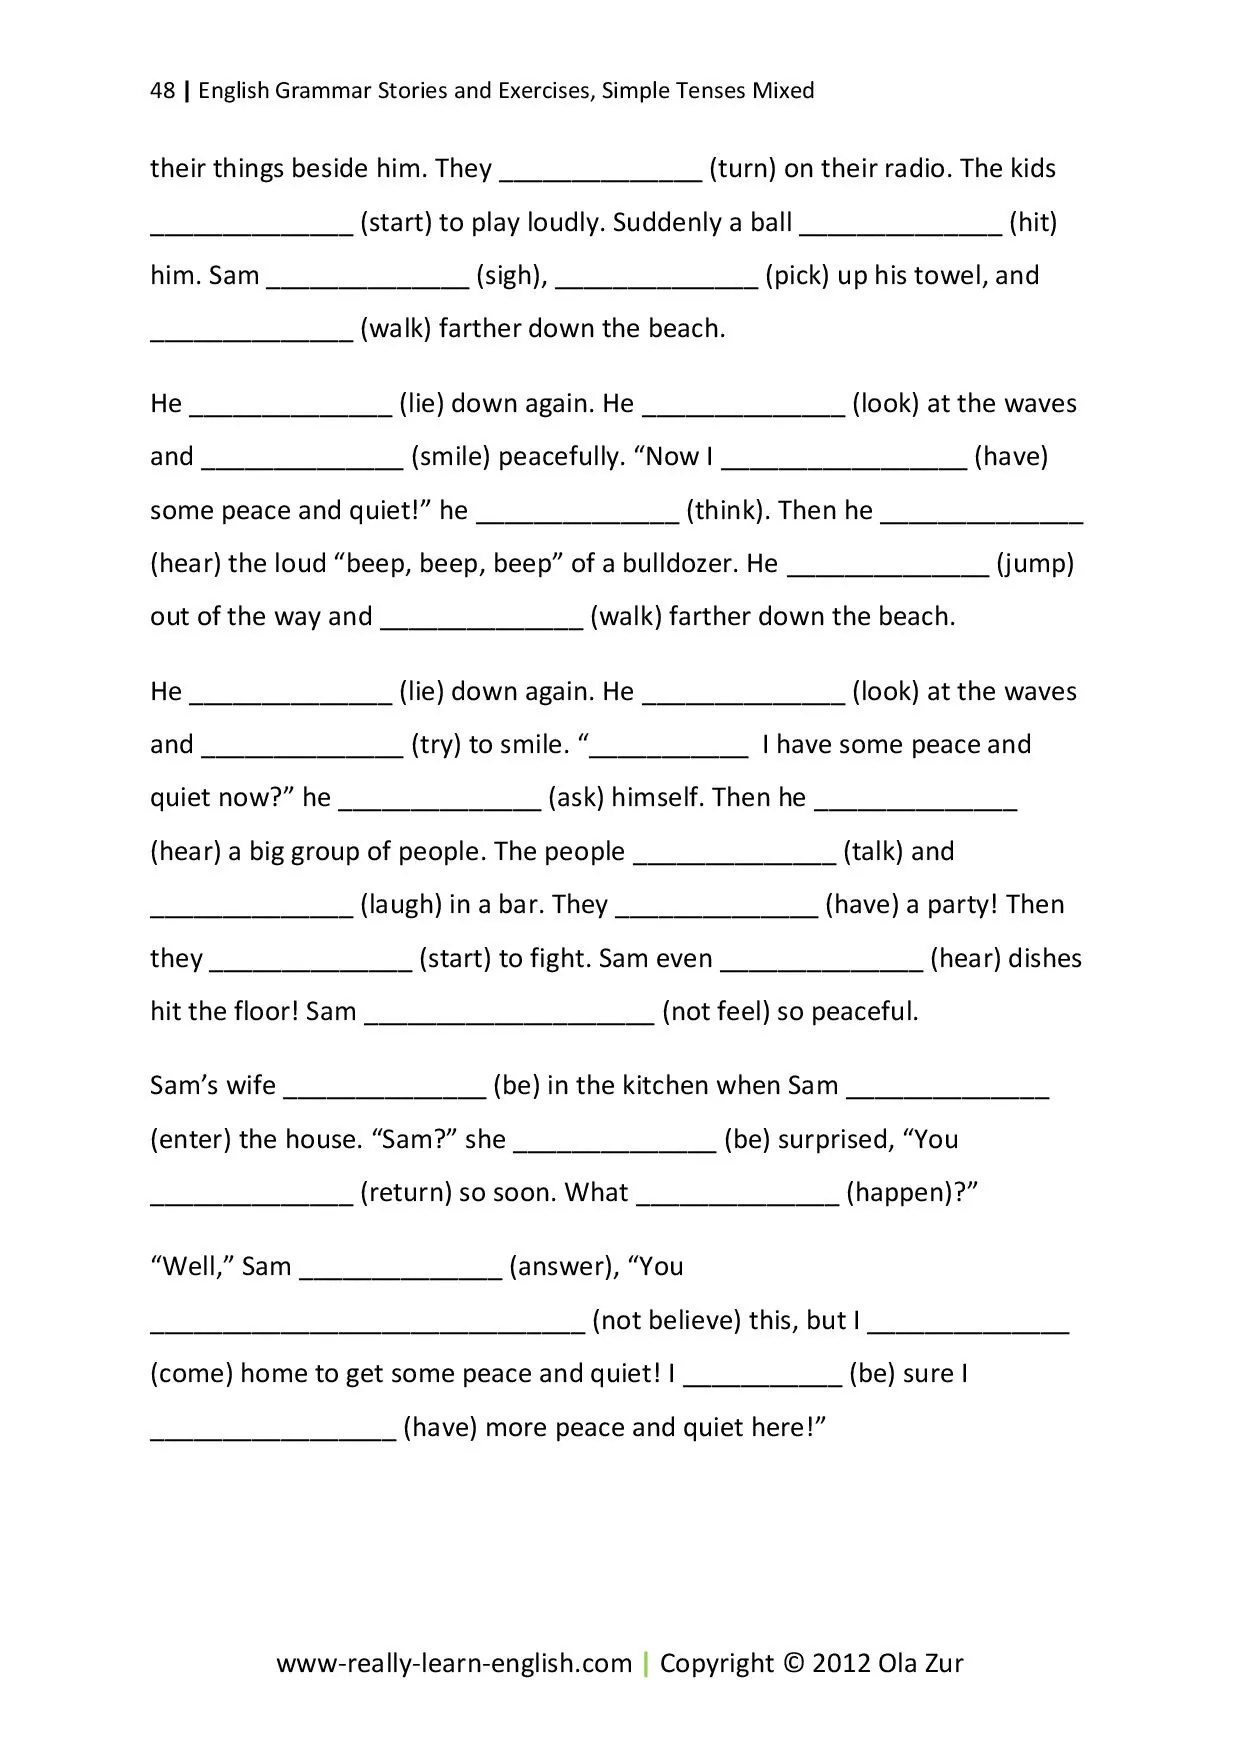 hight resolution of Stories and Exercises to Practice the Simple Tenses – Really Learn English